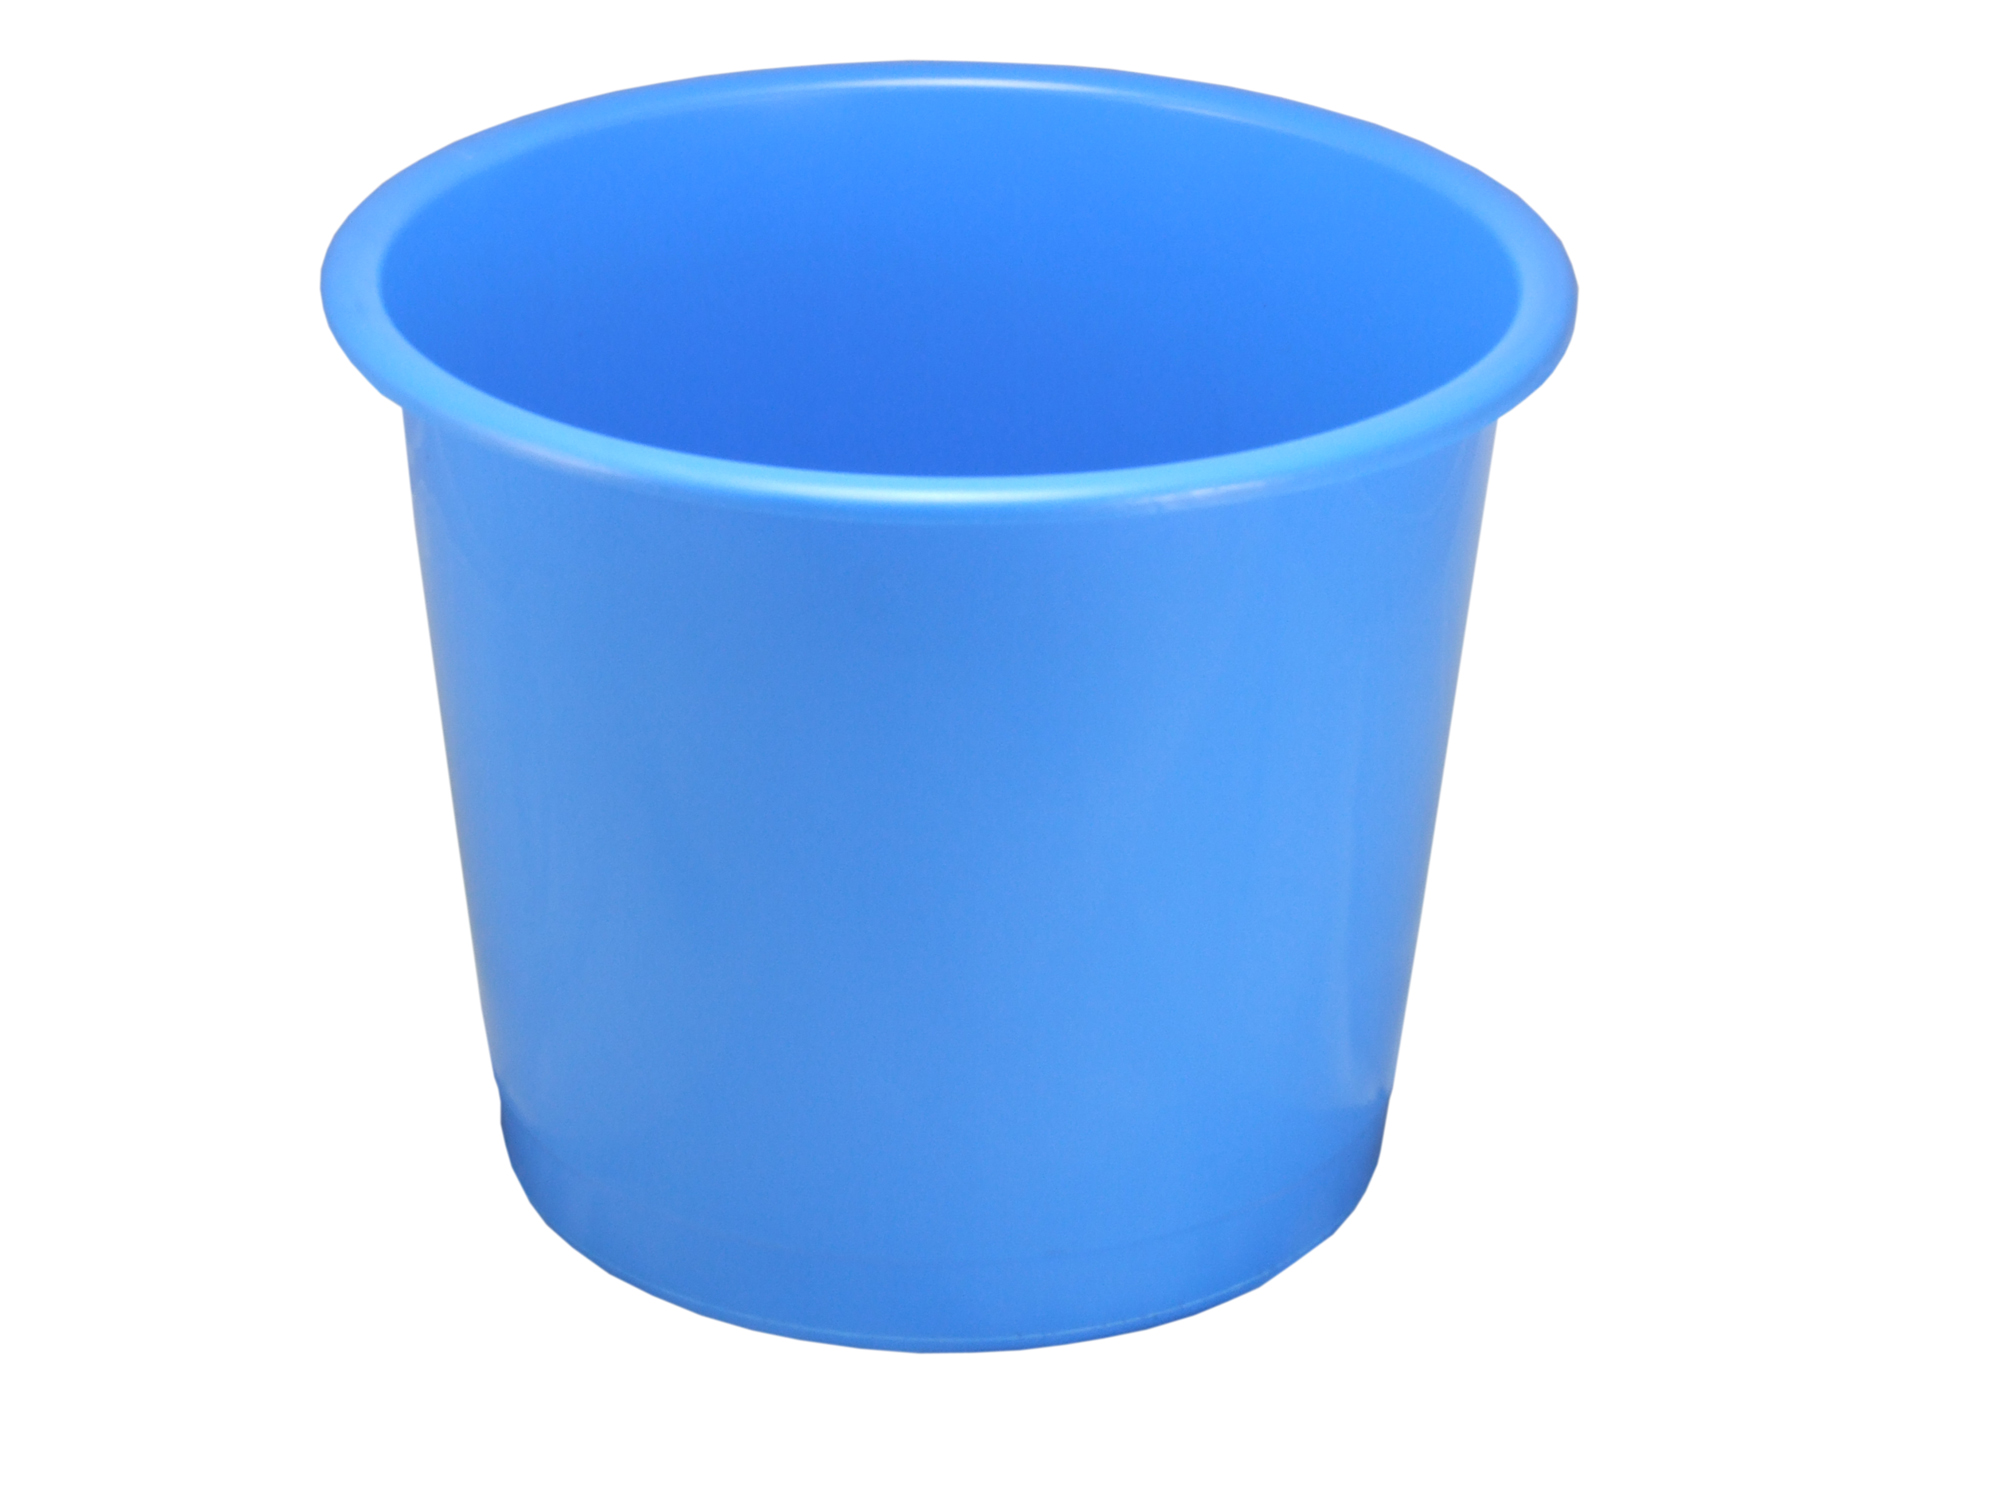 Rubbish Bins ValueX Deflecto 14L Plastic Waste Bin Blue